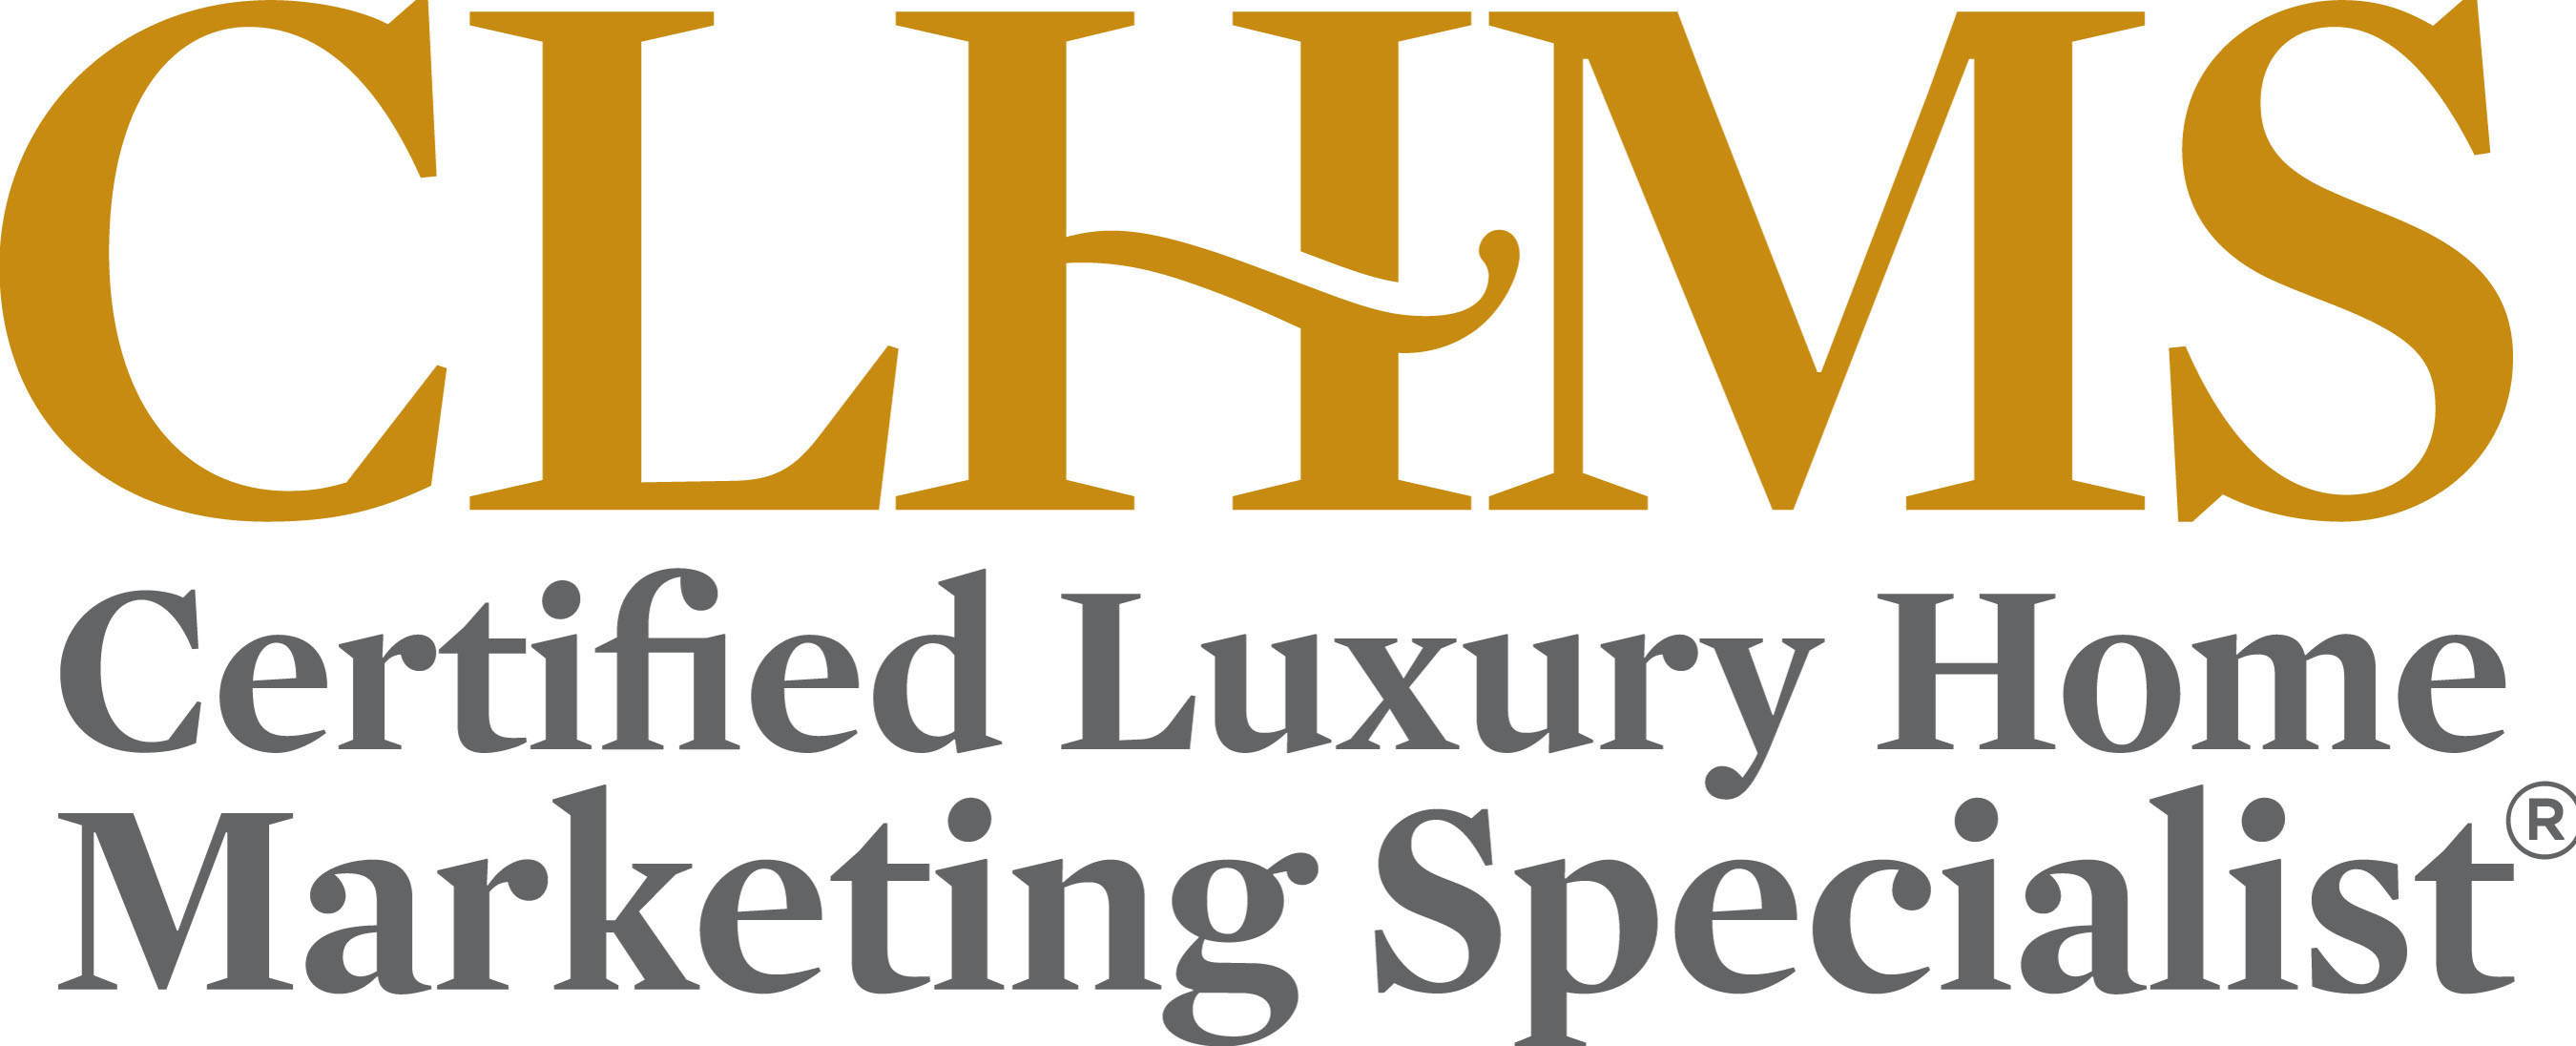 High Quality Official Seal Of The Institute For Luxury Home Marketing